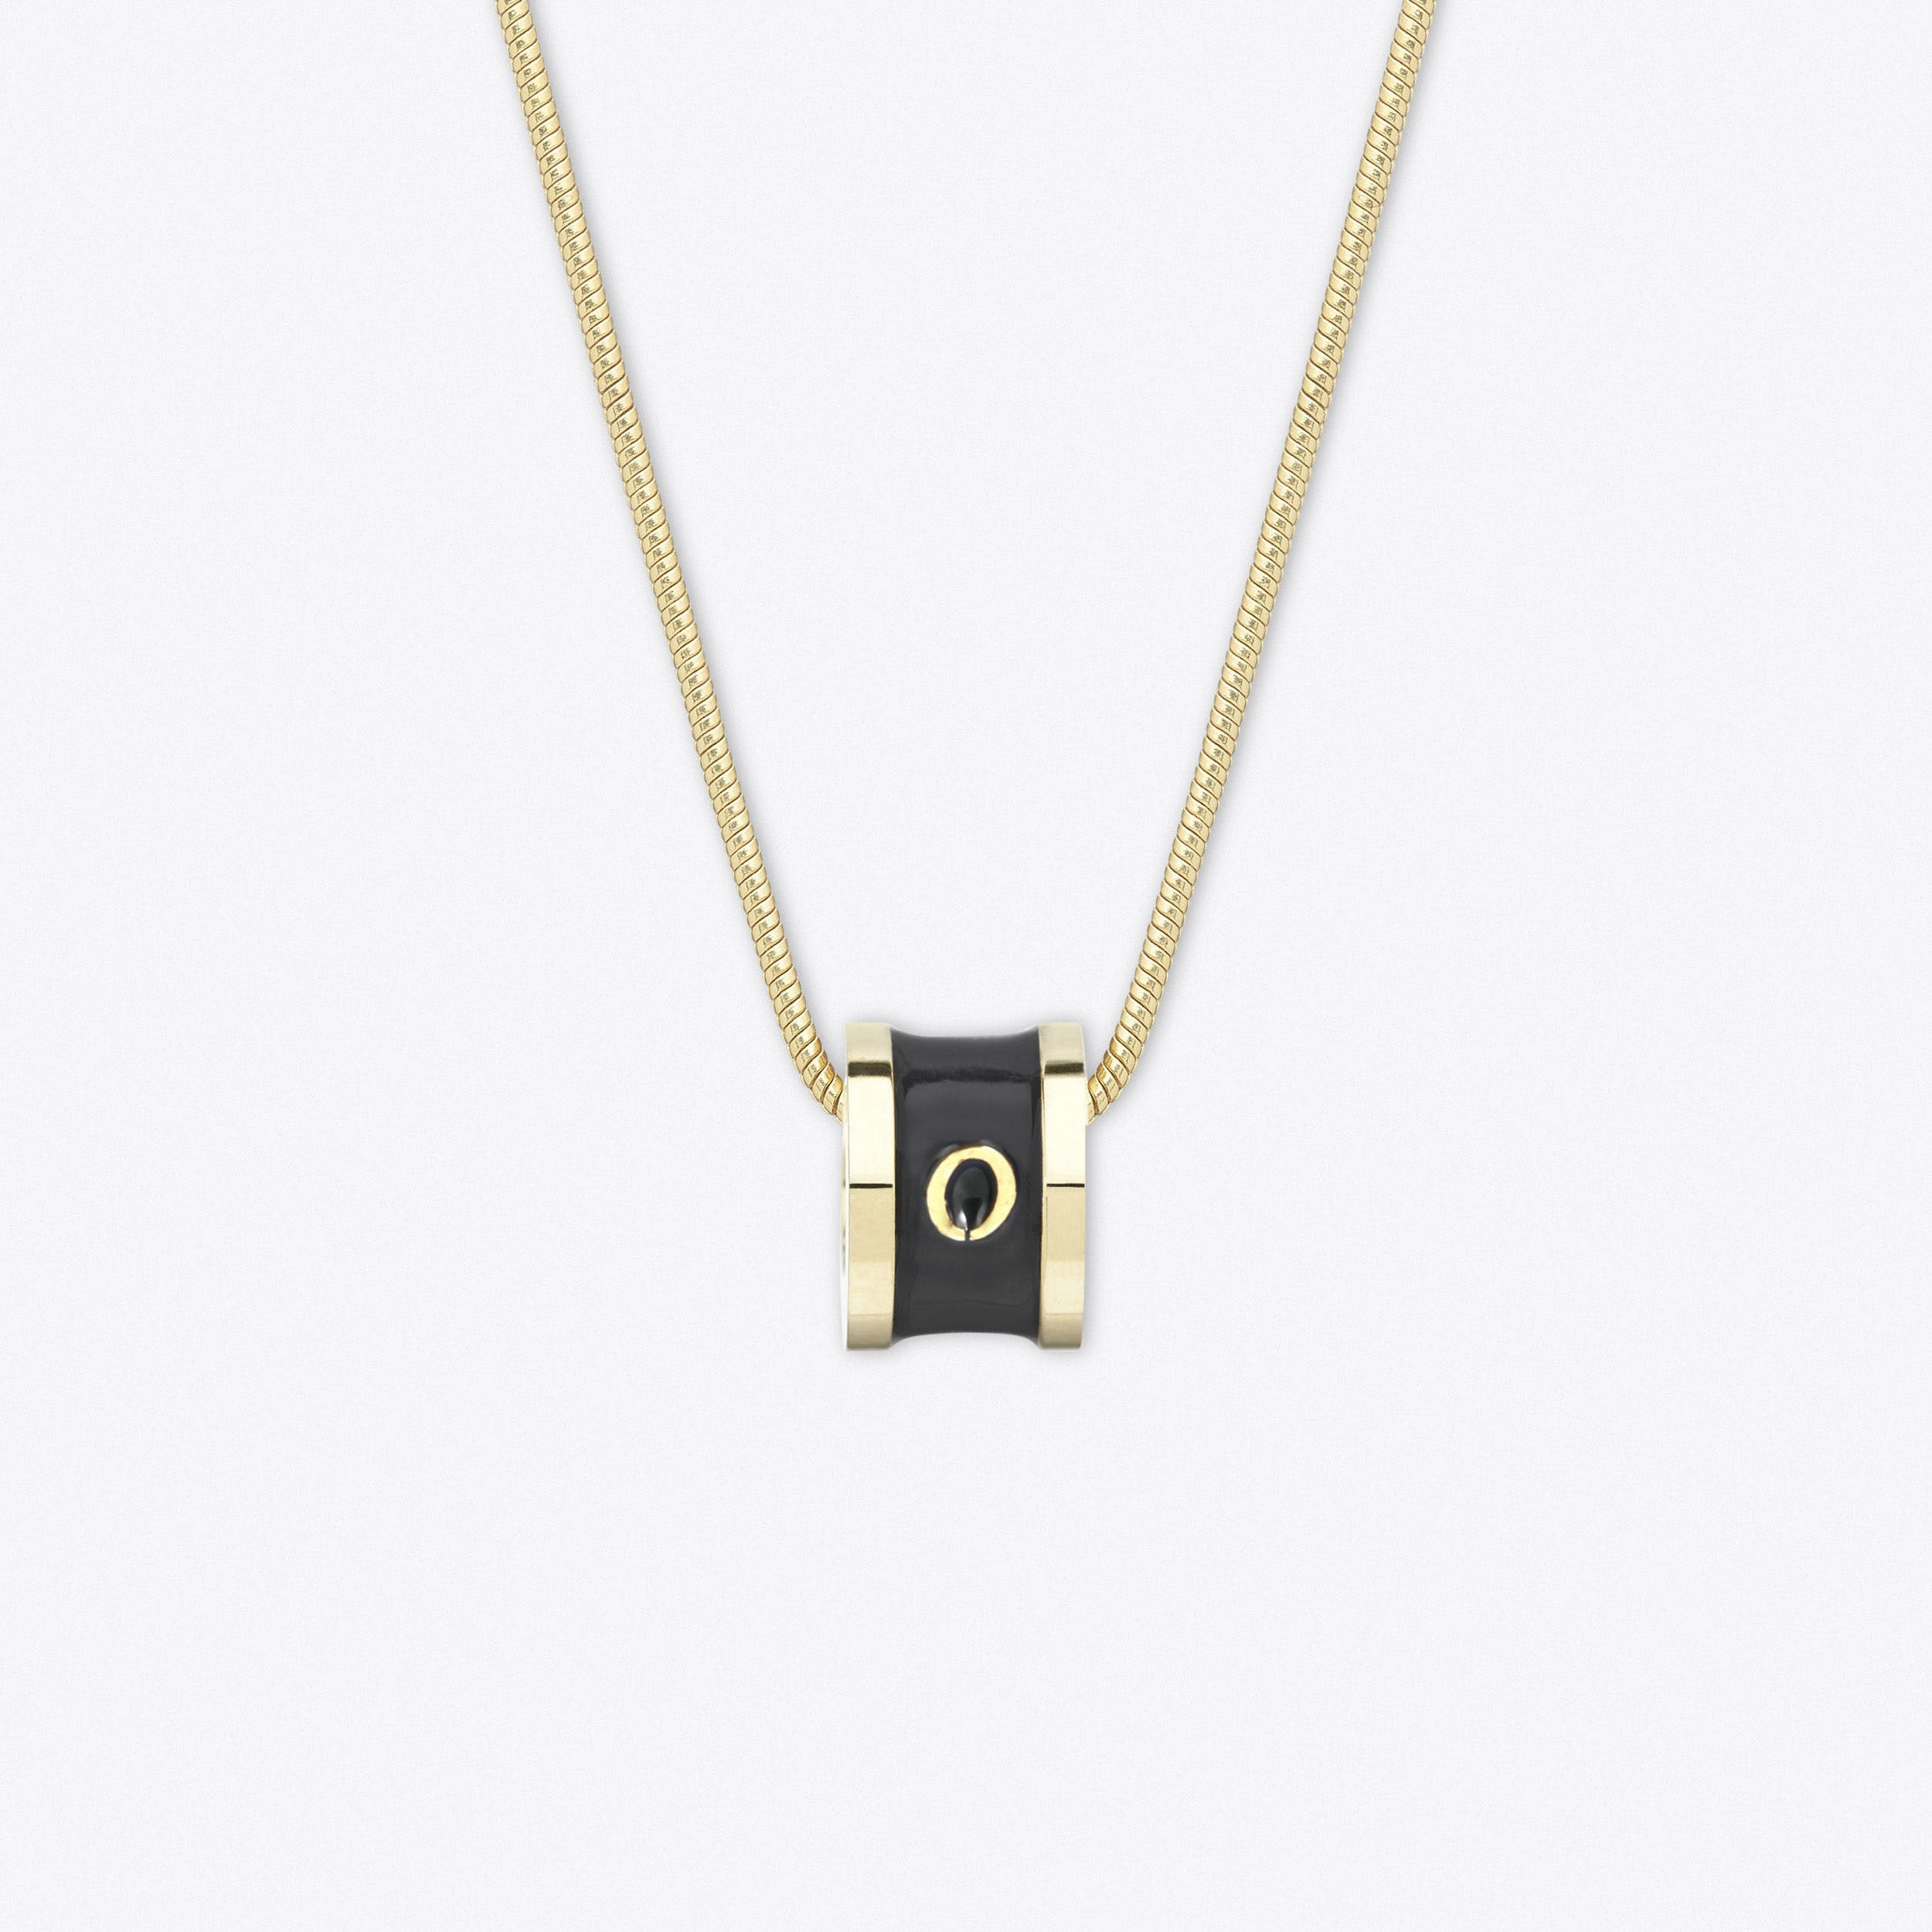 24ct Necklace O